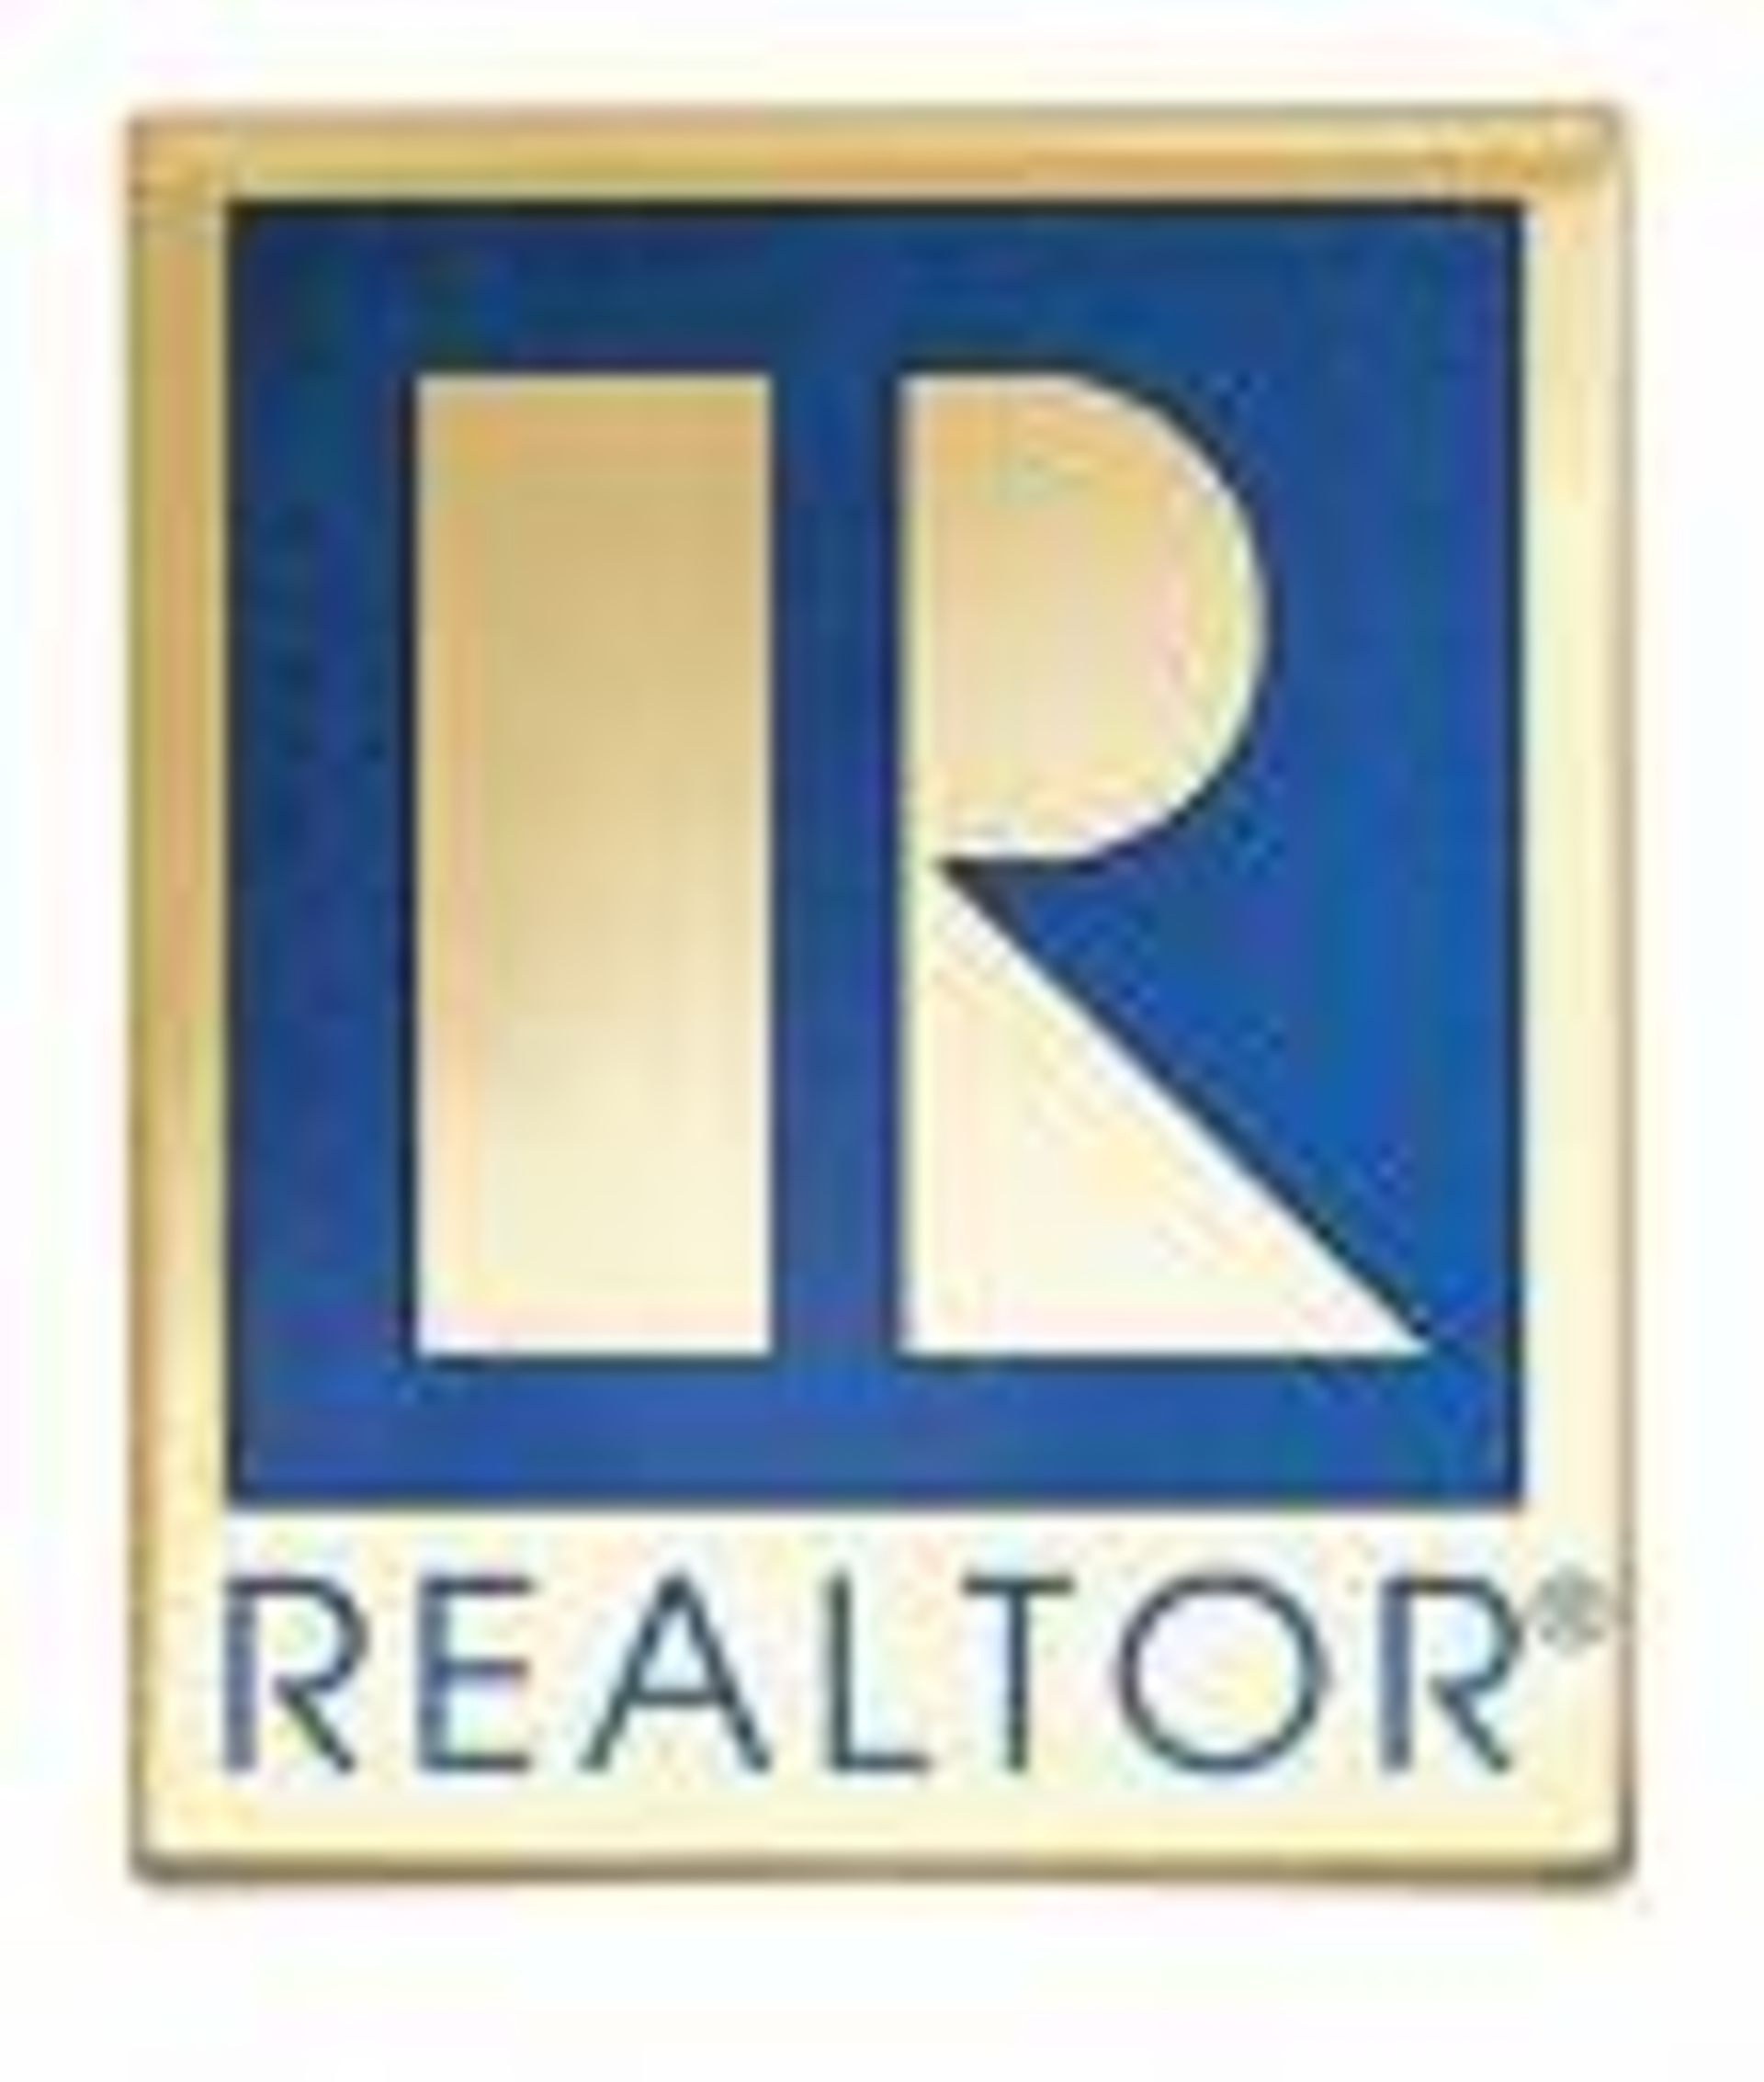 NAR Says Real Estate Contract Sightings Up 5.5% in February